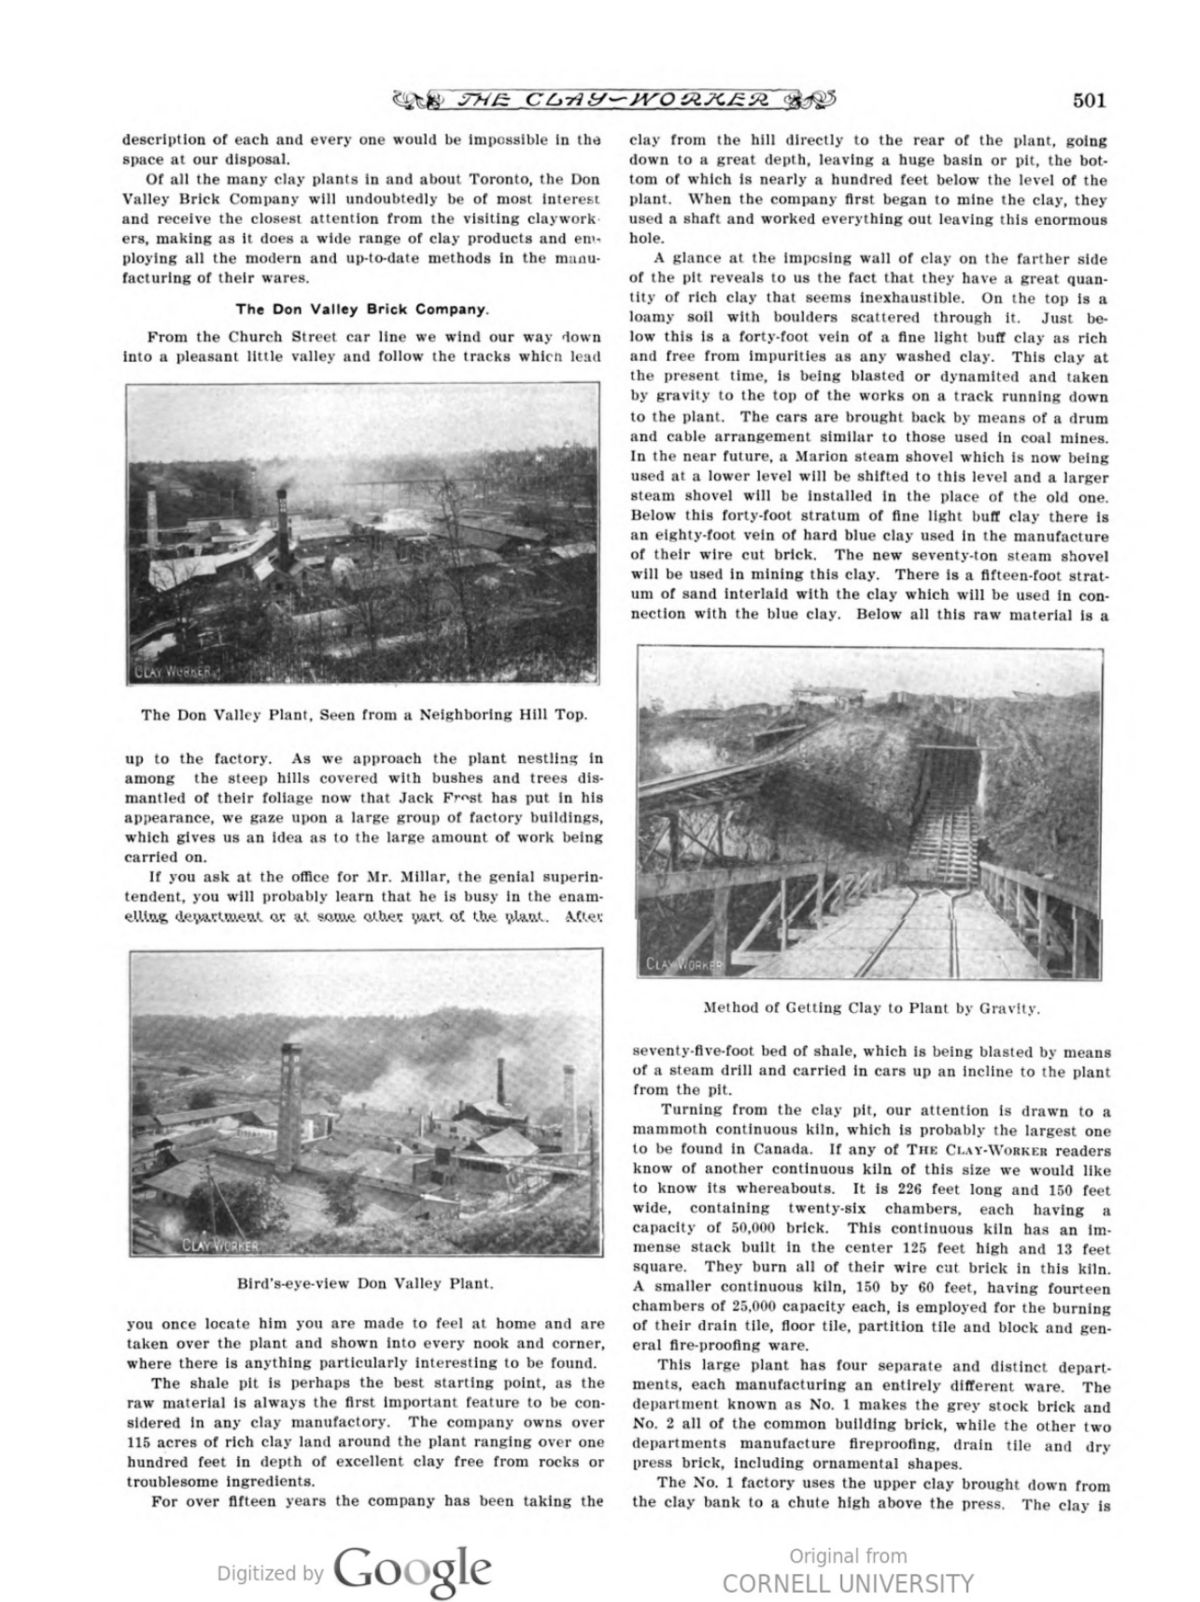 The Clay Worker Nov 1906 501